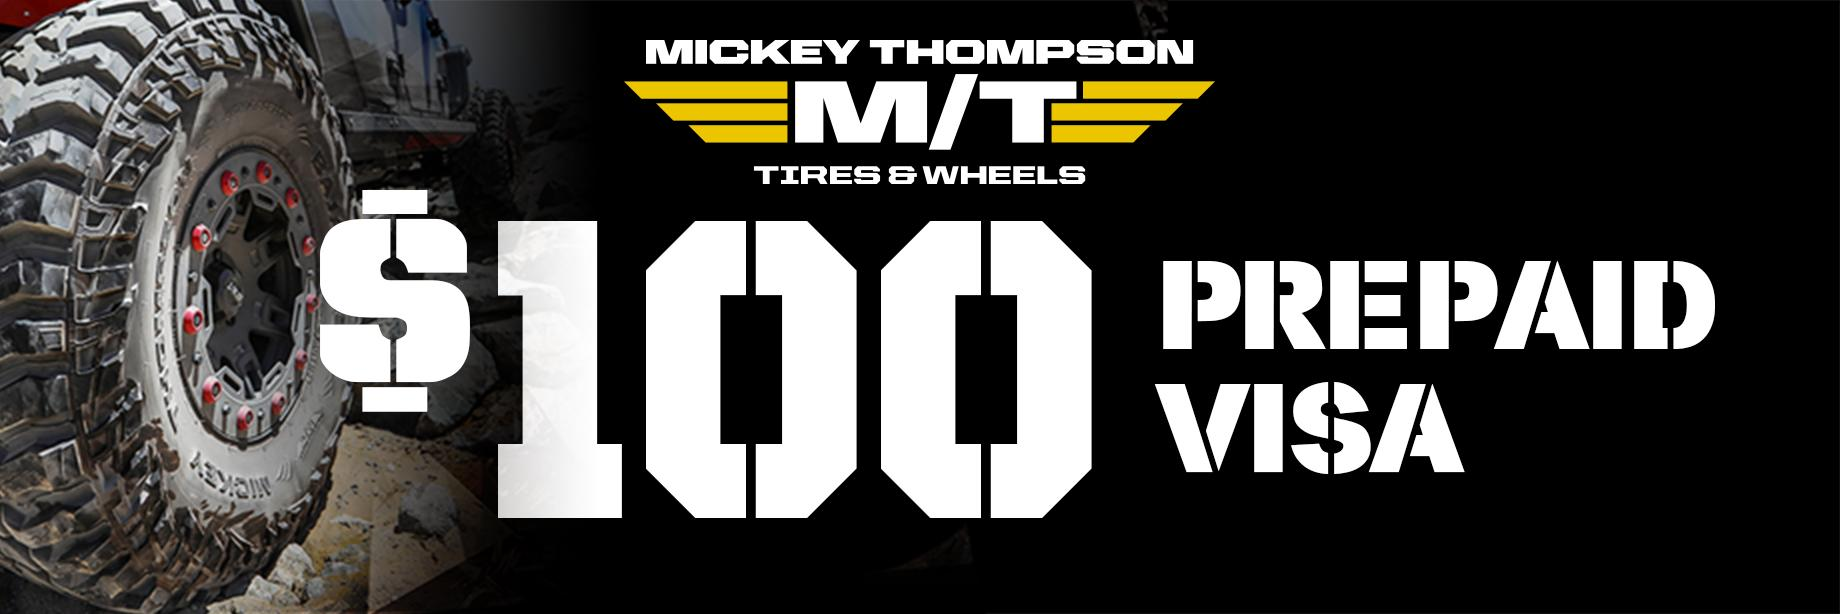 Mickey Thompson October 2020 tire rebate with Discount Tire Direct